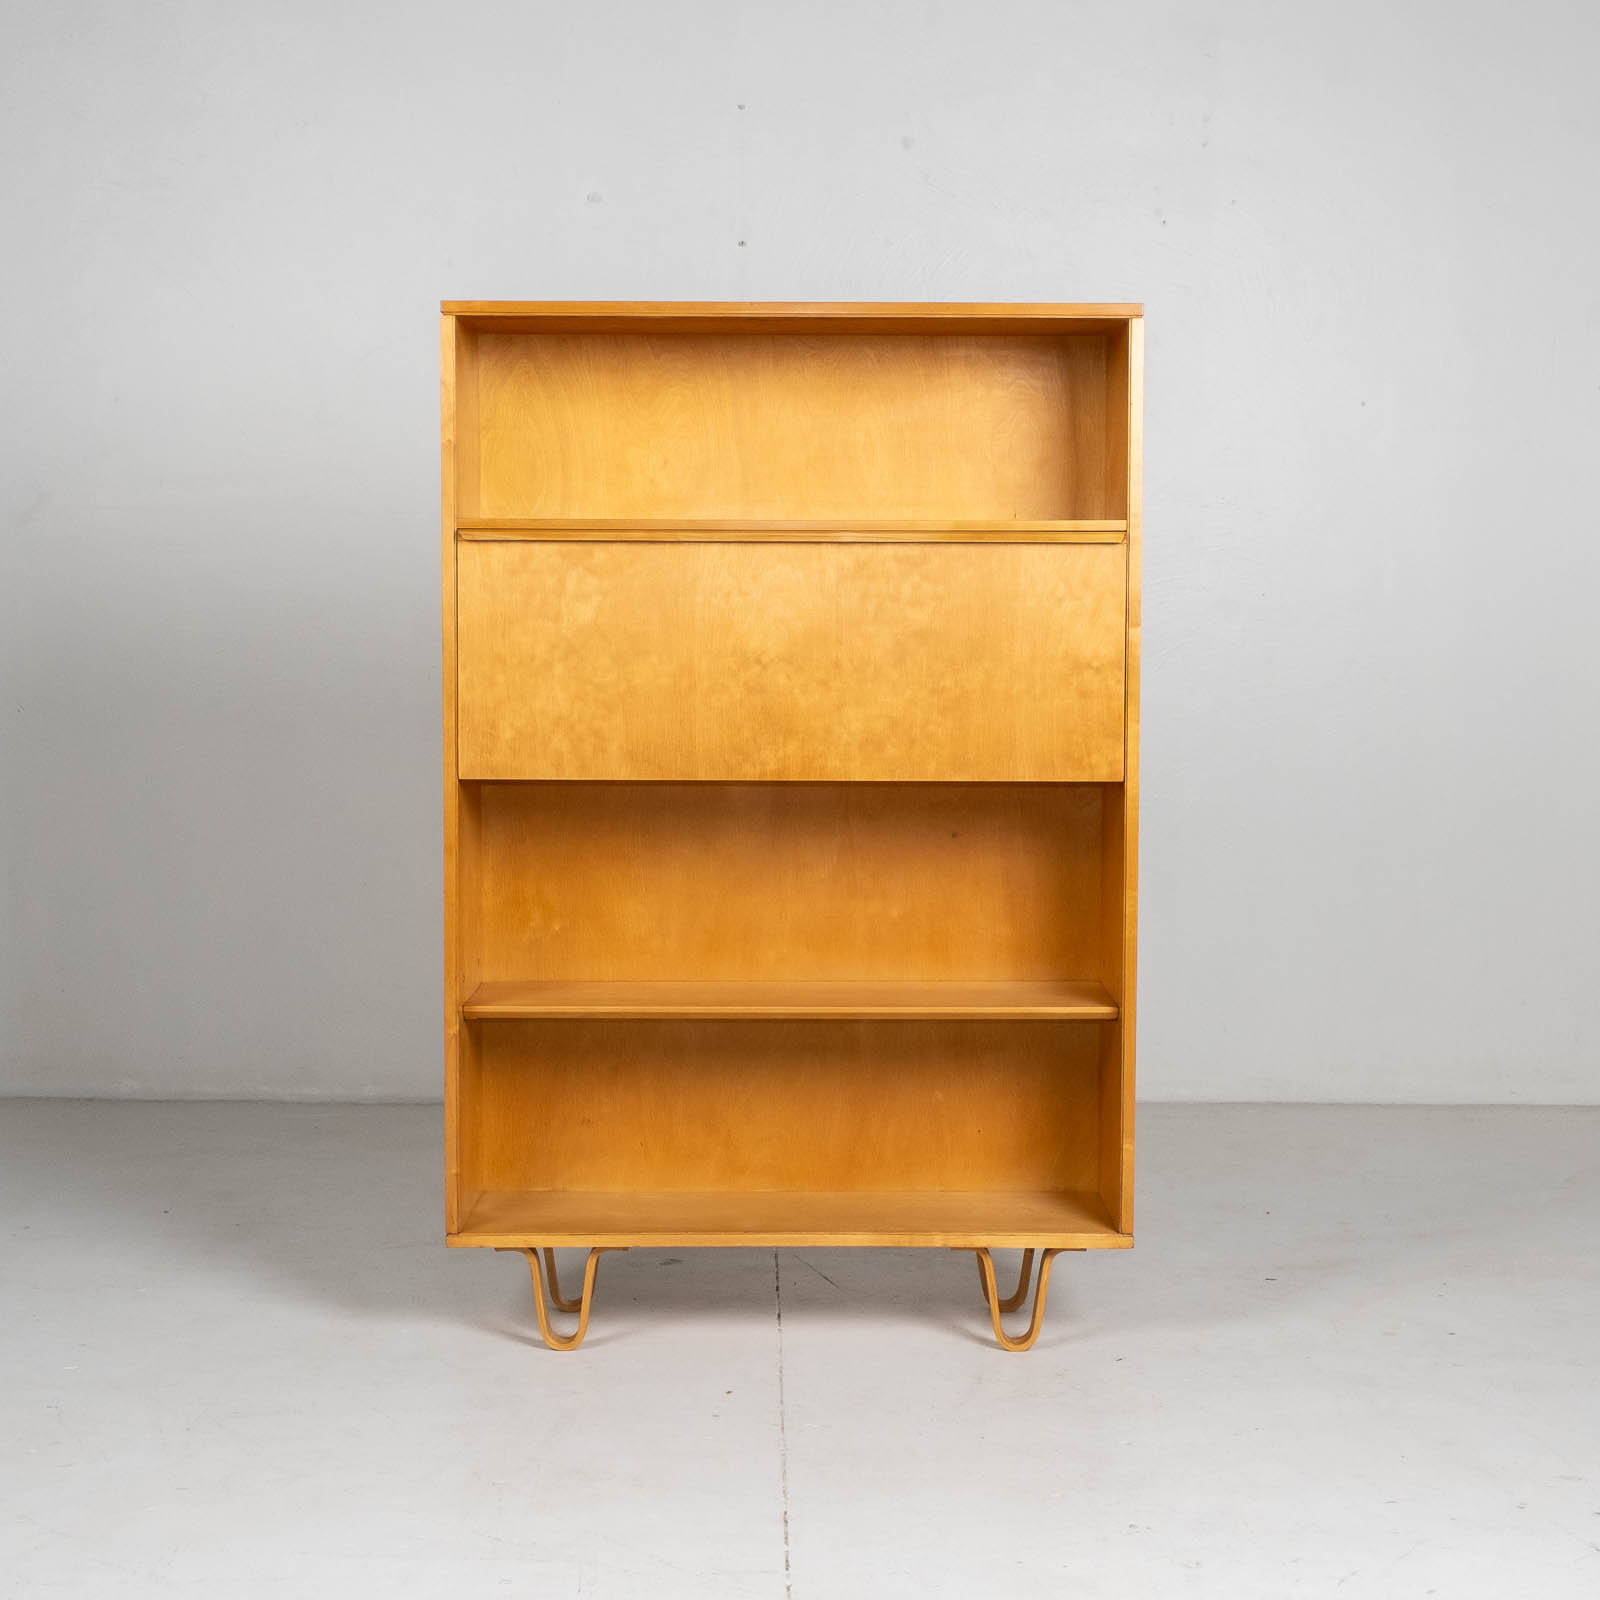 Bb04 Bookcase By Cees Braakman For Pastoe In Birch, 1950s, The Netherlands 0017